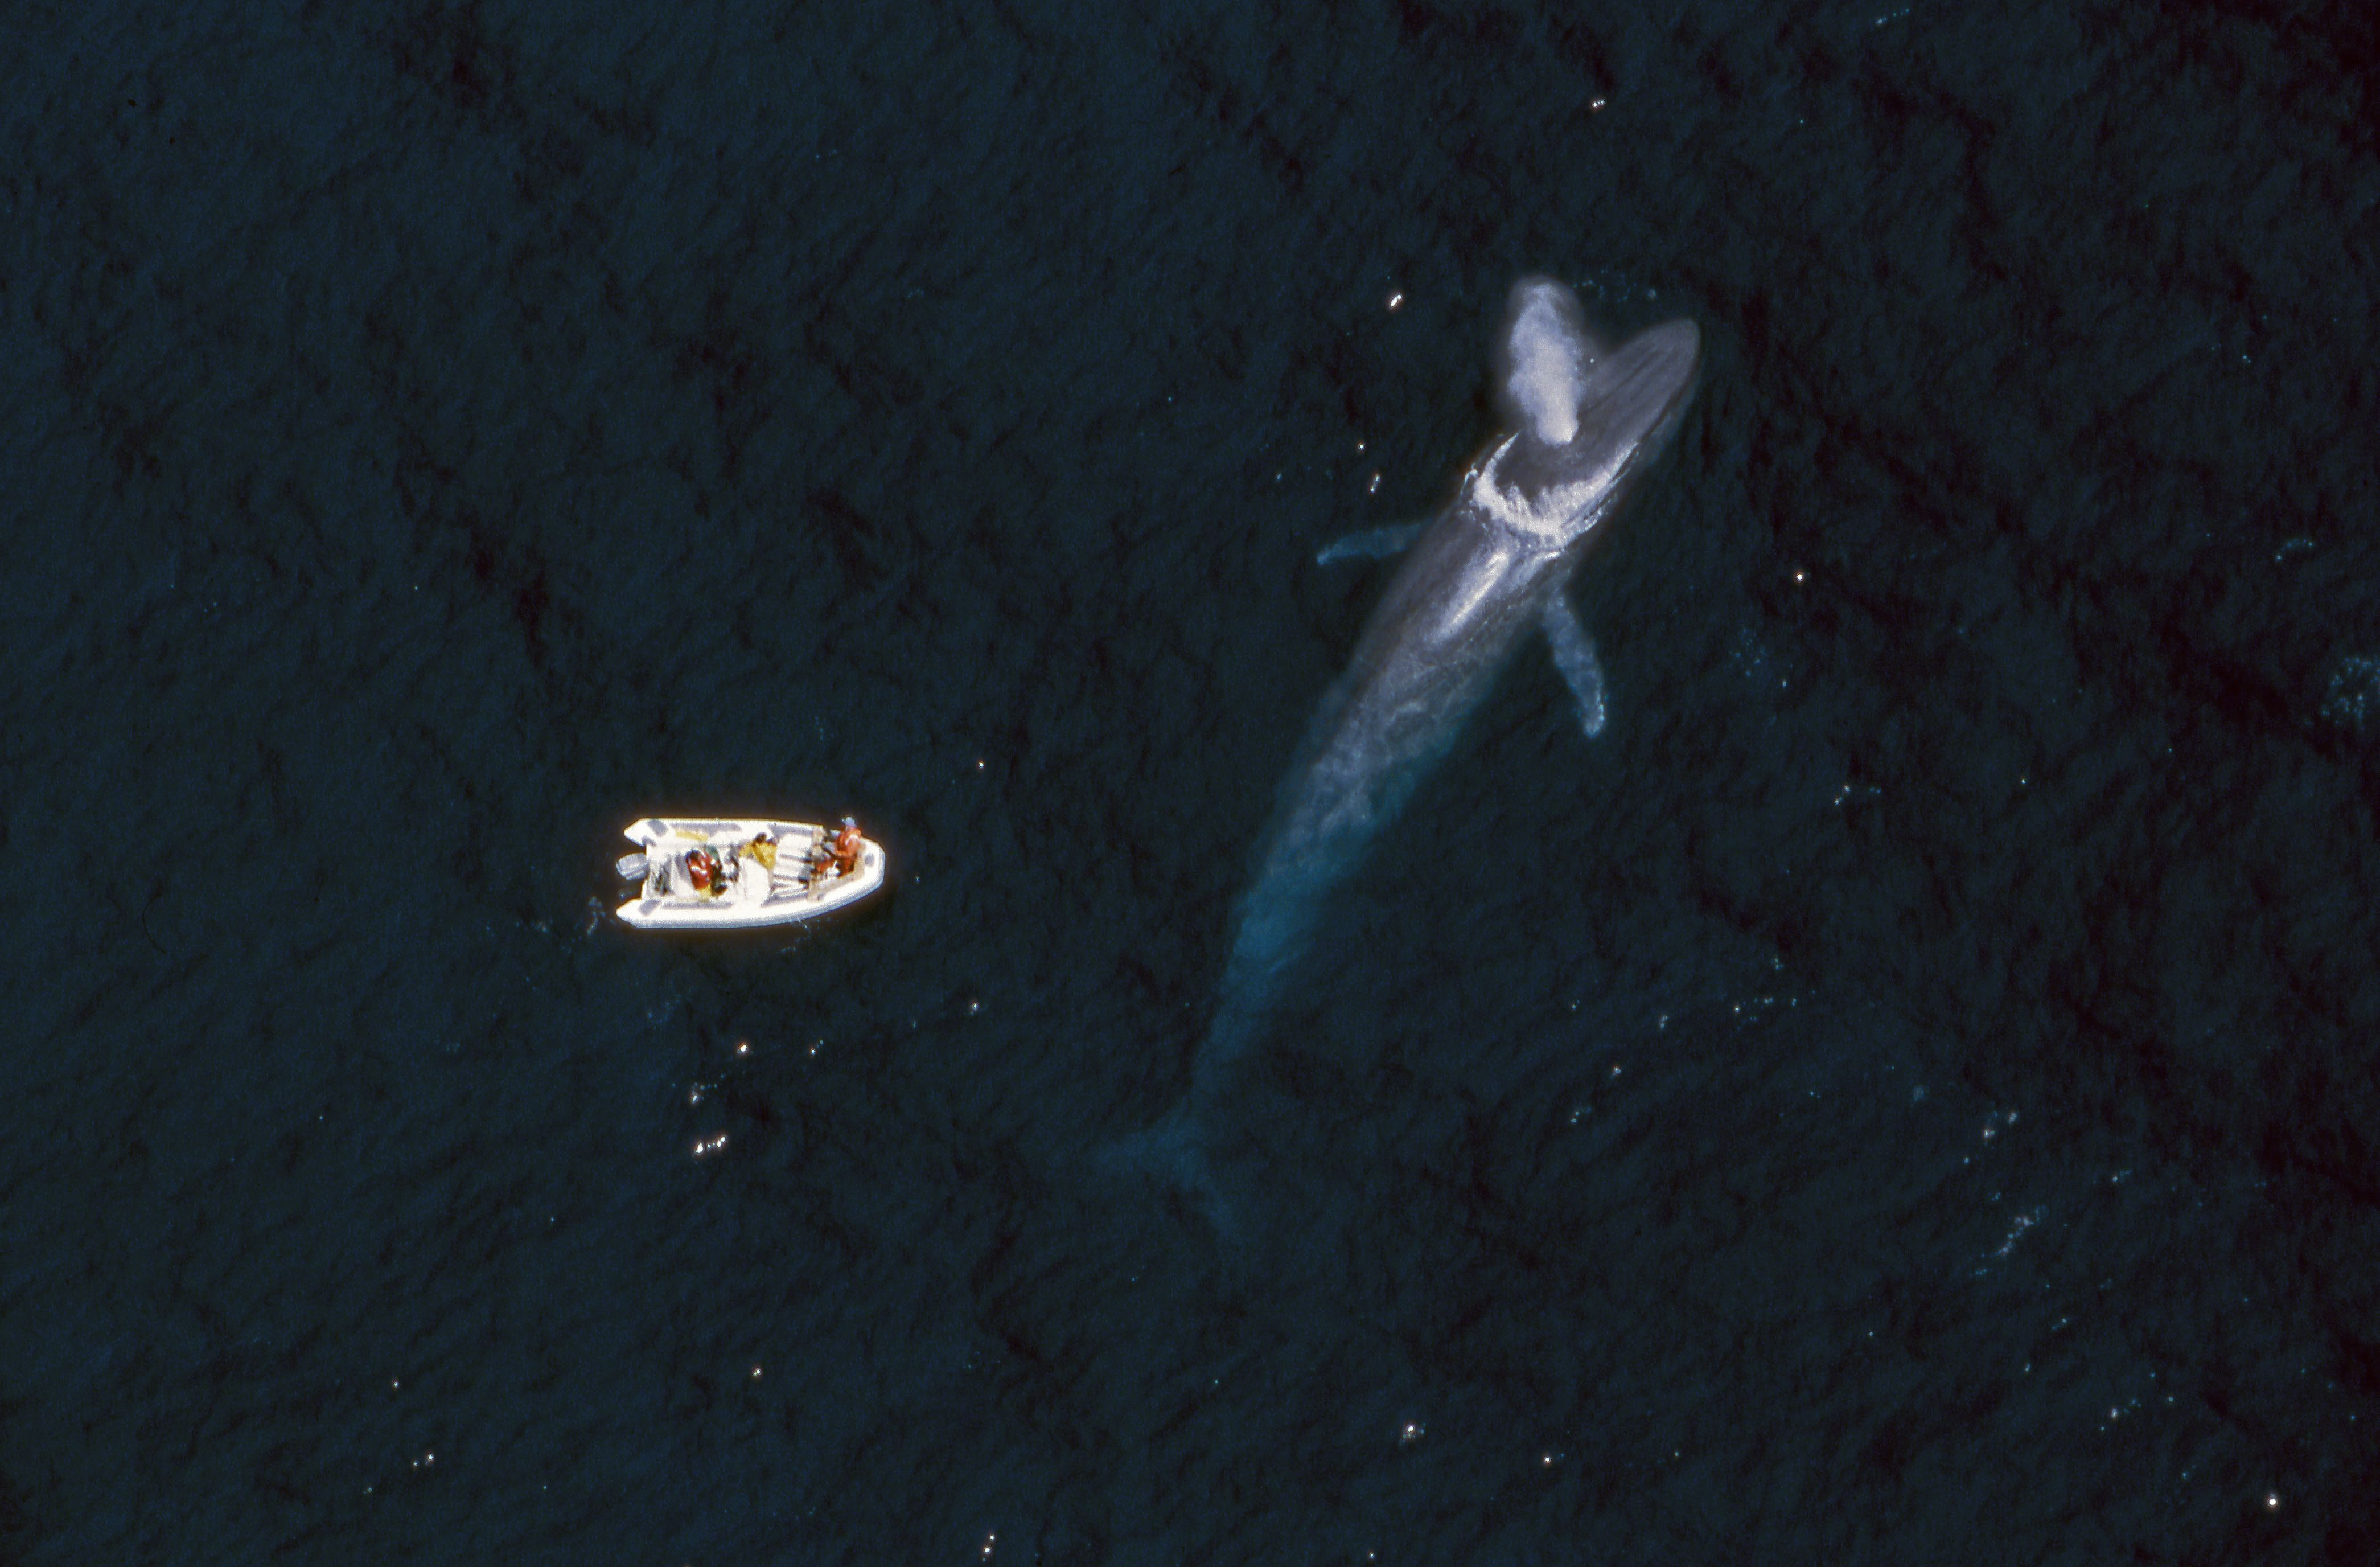 A blue whale spouts near a research boat. Credit: Flip Nickin, Minden Pictures